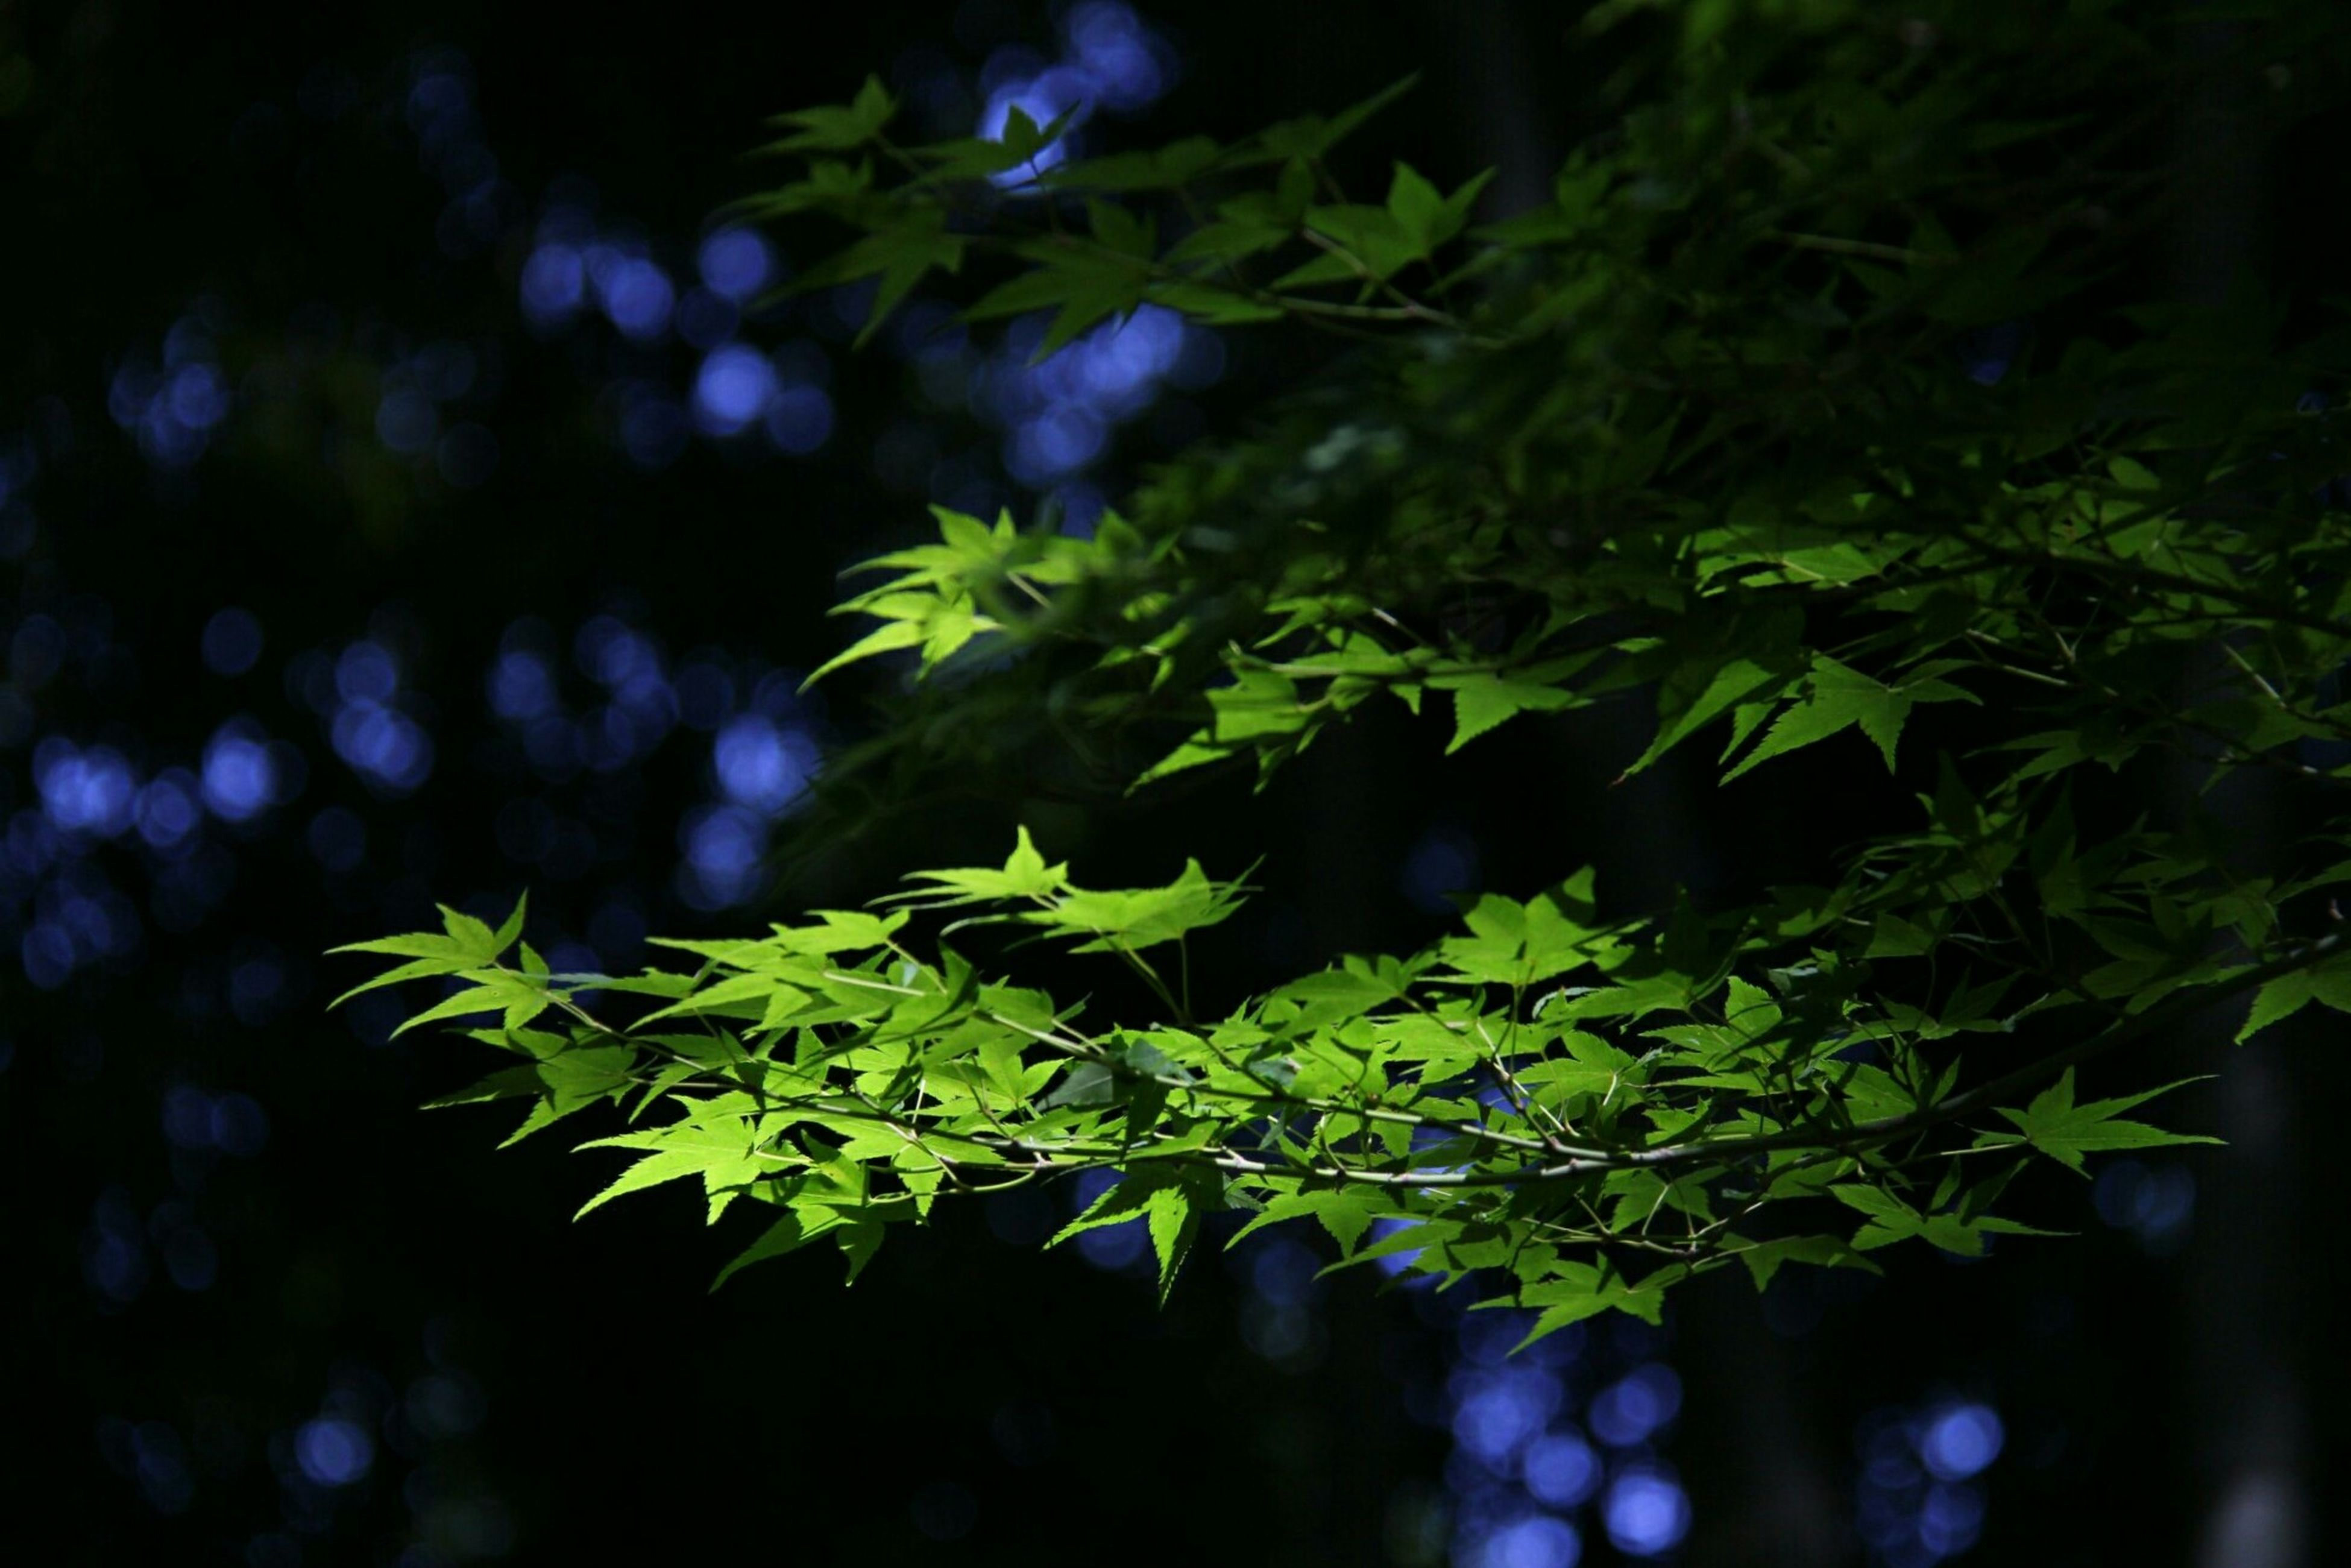 leaf, growth, close-up, green color, tree, plant, selective focus, nature, branch, focus on foreground, fragility, beauty in nature, green, freshness, day, scenics, dark, outdoors, tranquility, botany, no people, plant life, lush foliage